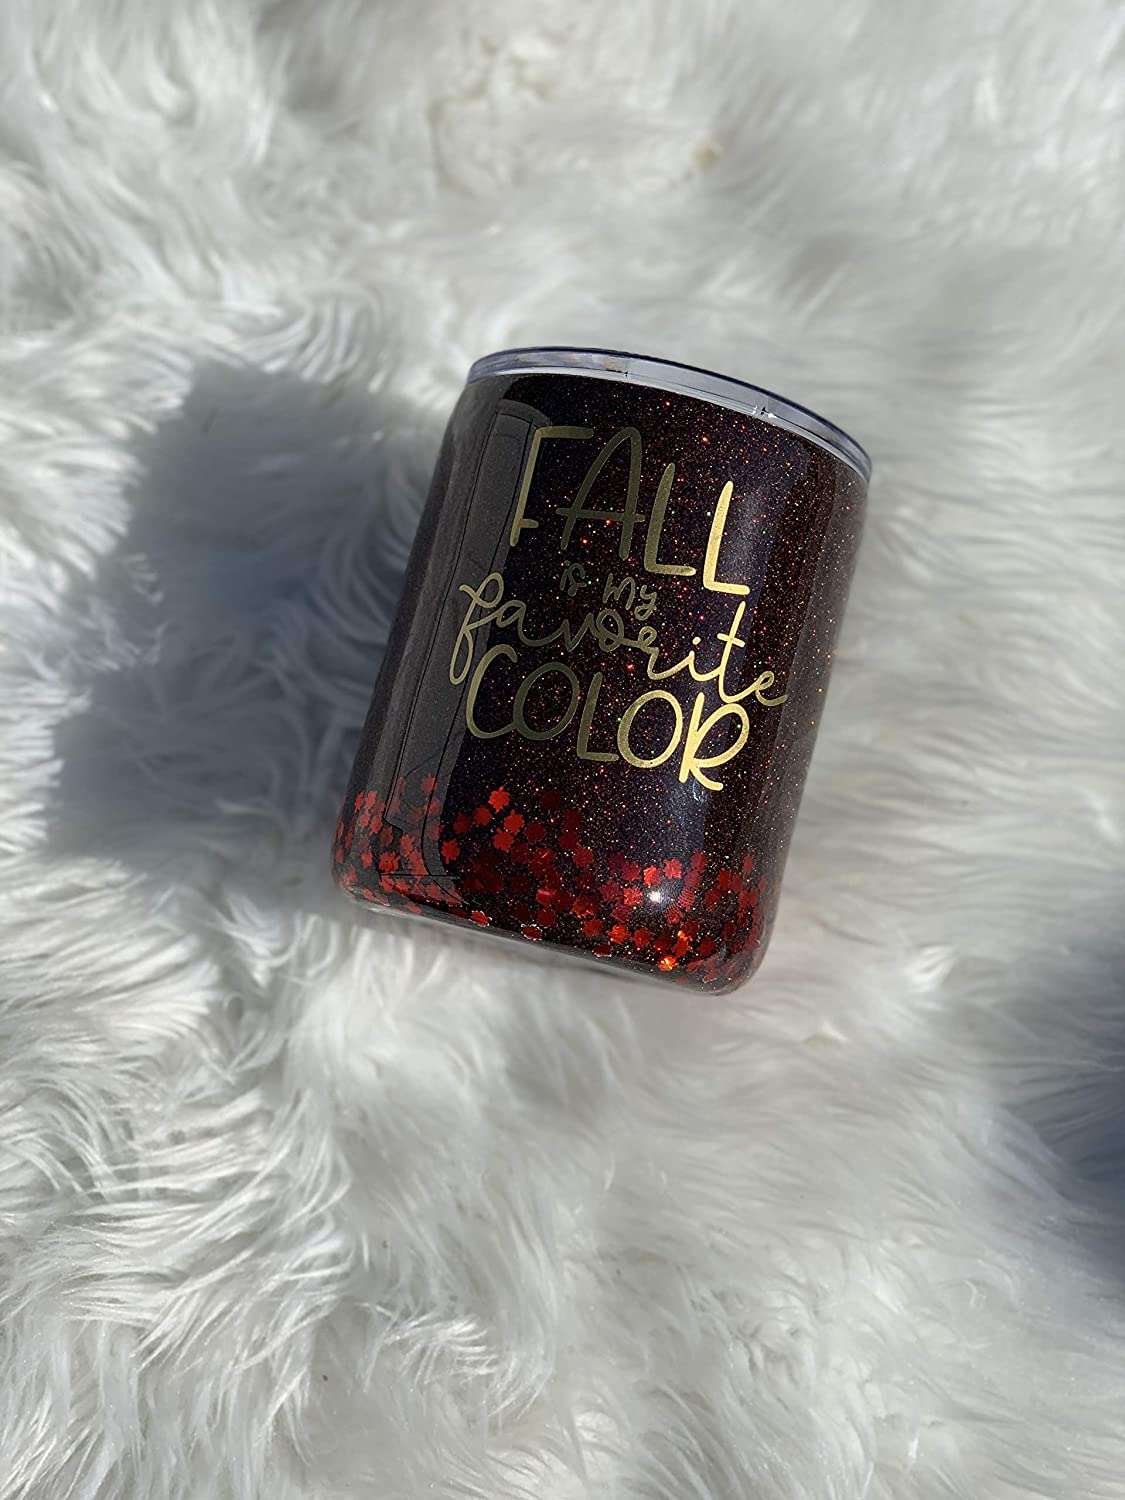 Fall New product Max 73% OFF type is my Favorite Color Tumbler Glitter